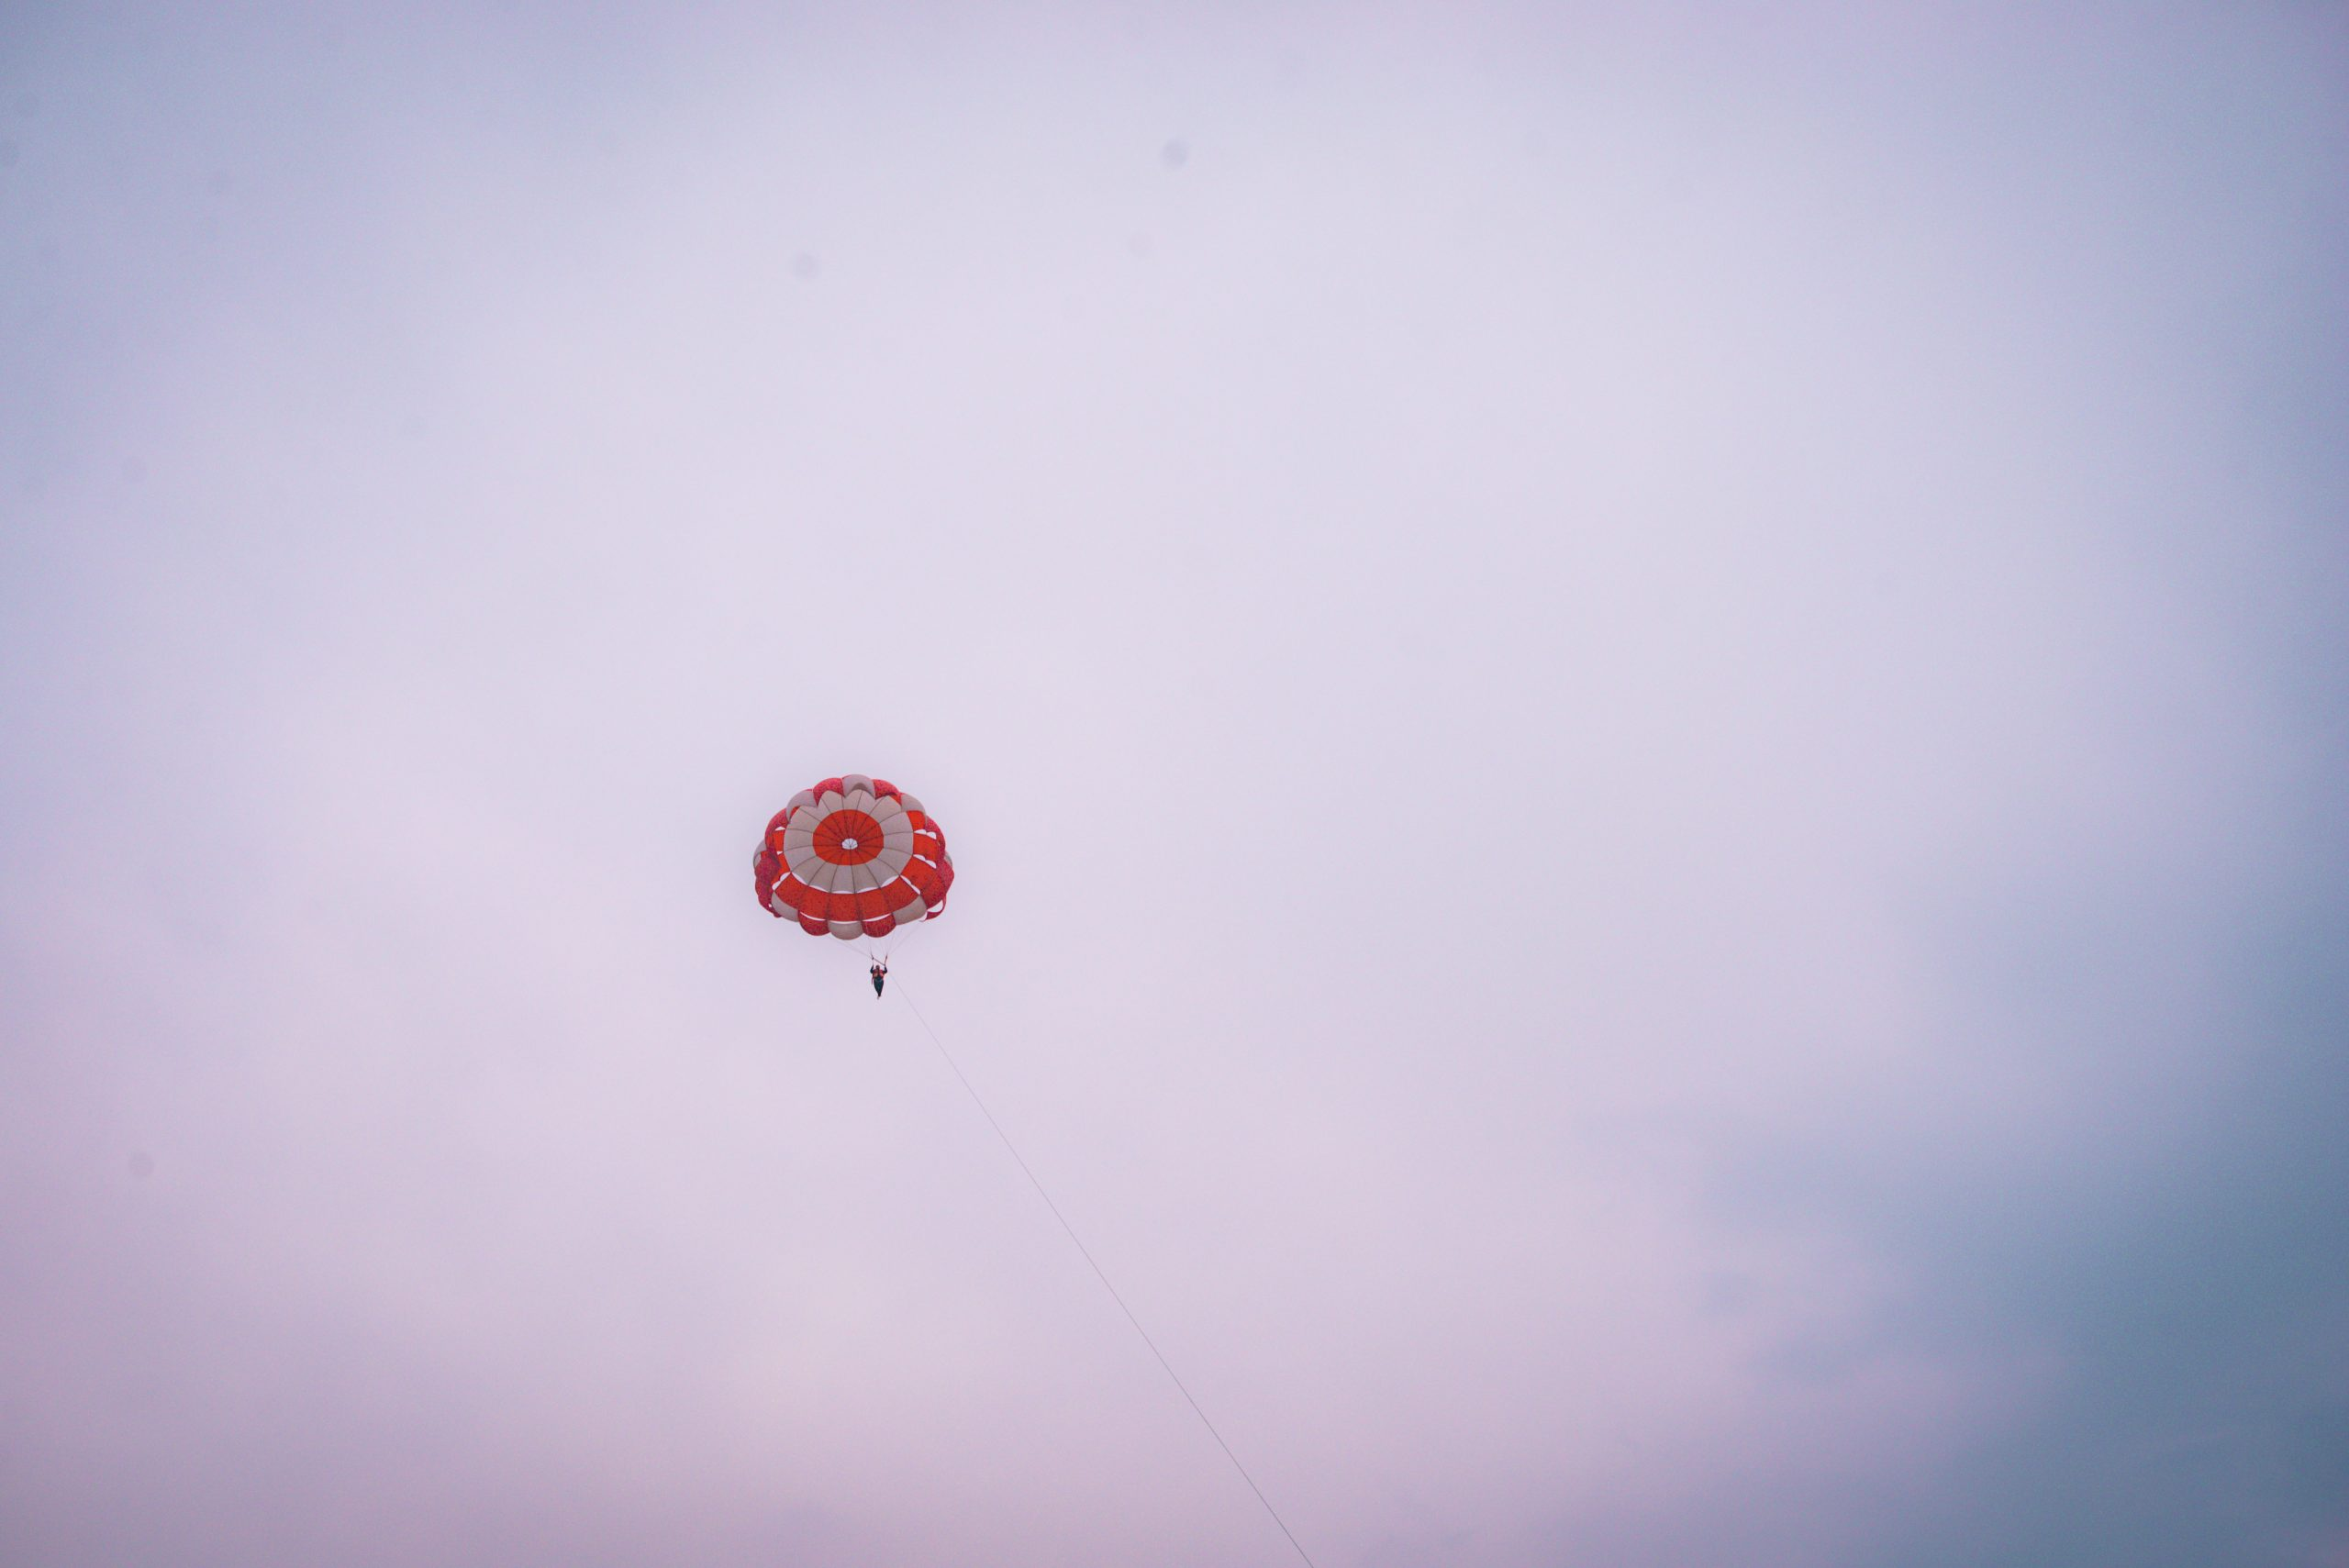 Using A Bed Sheet For A Parachute And Trying To Make Money Online… Part 1